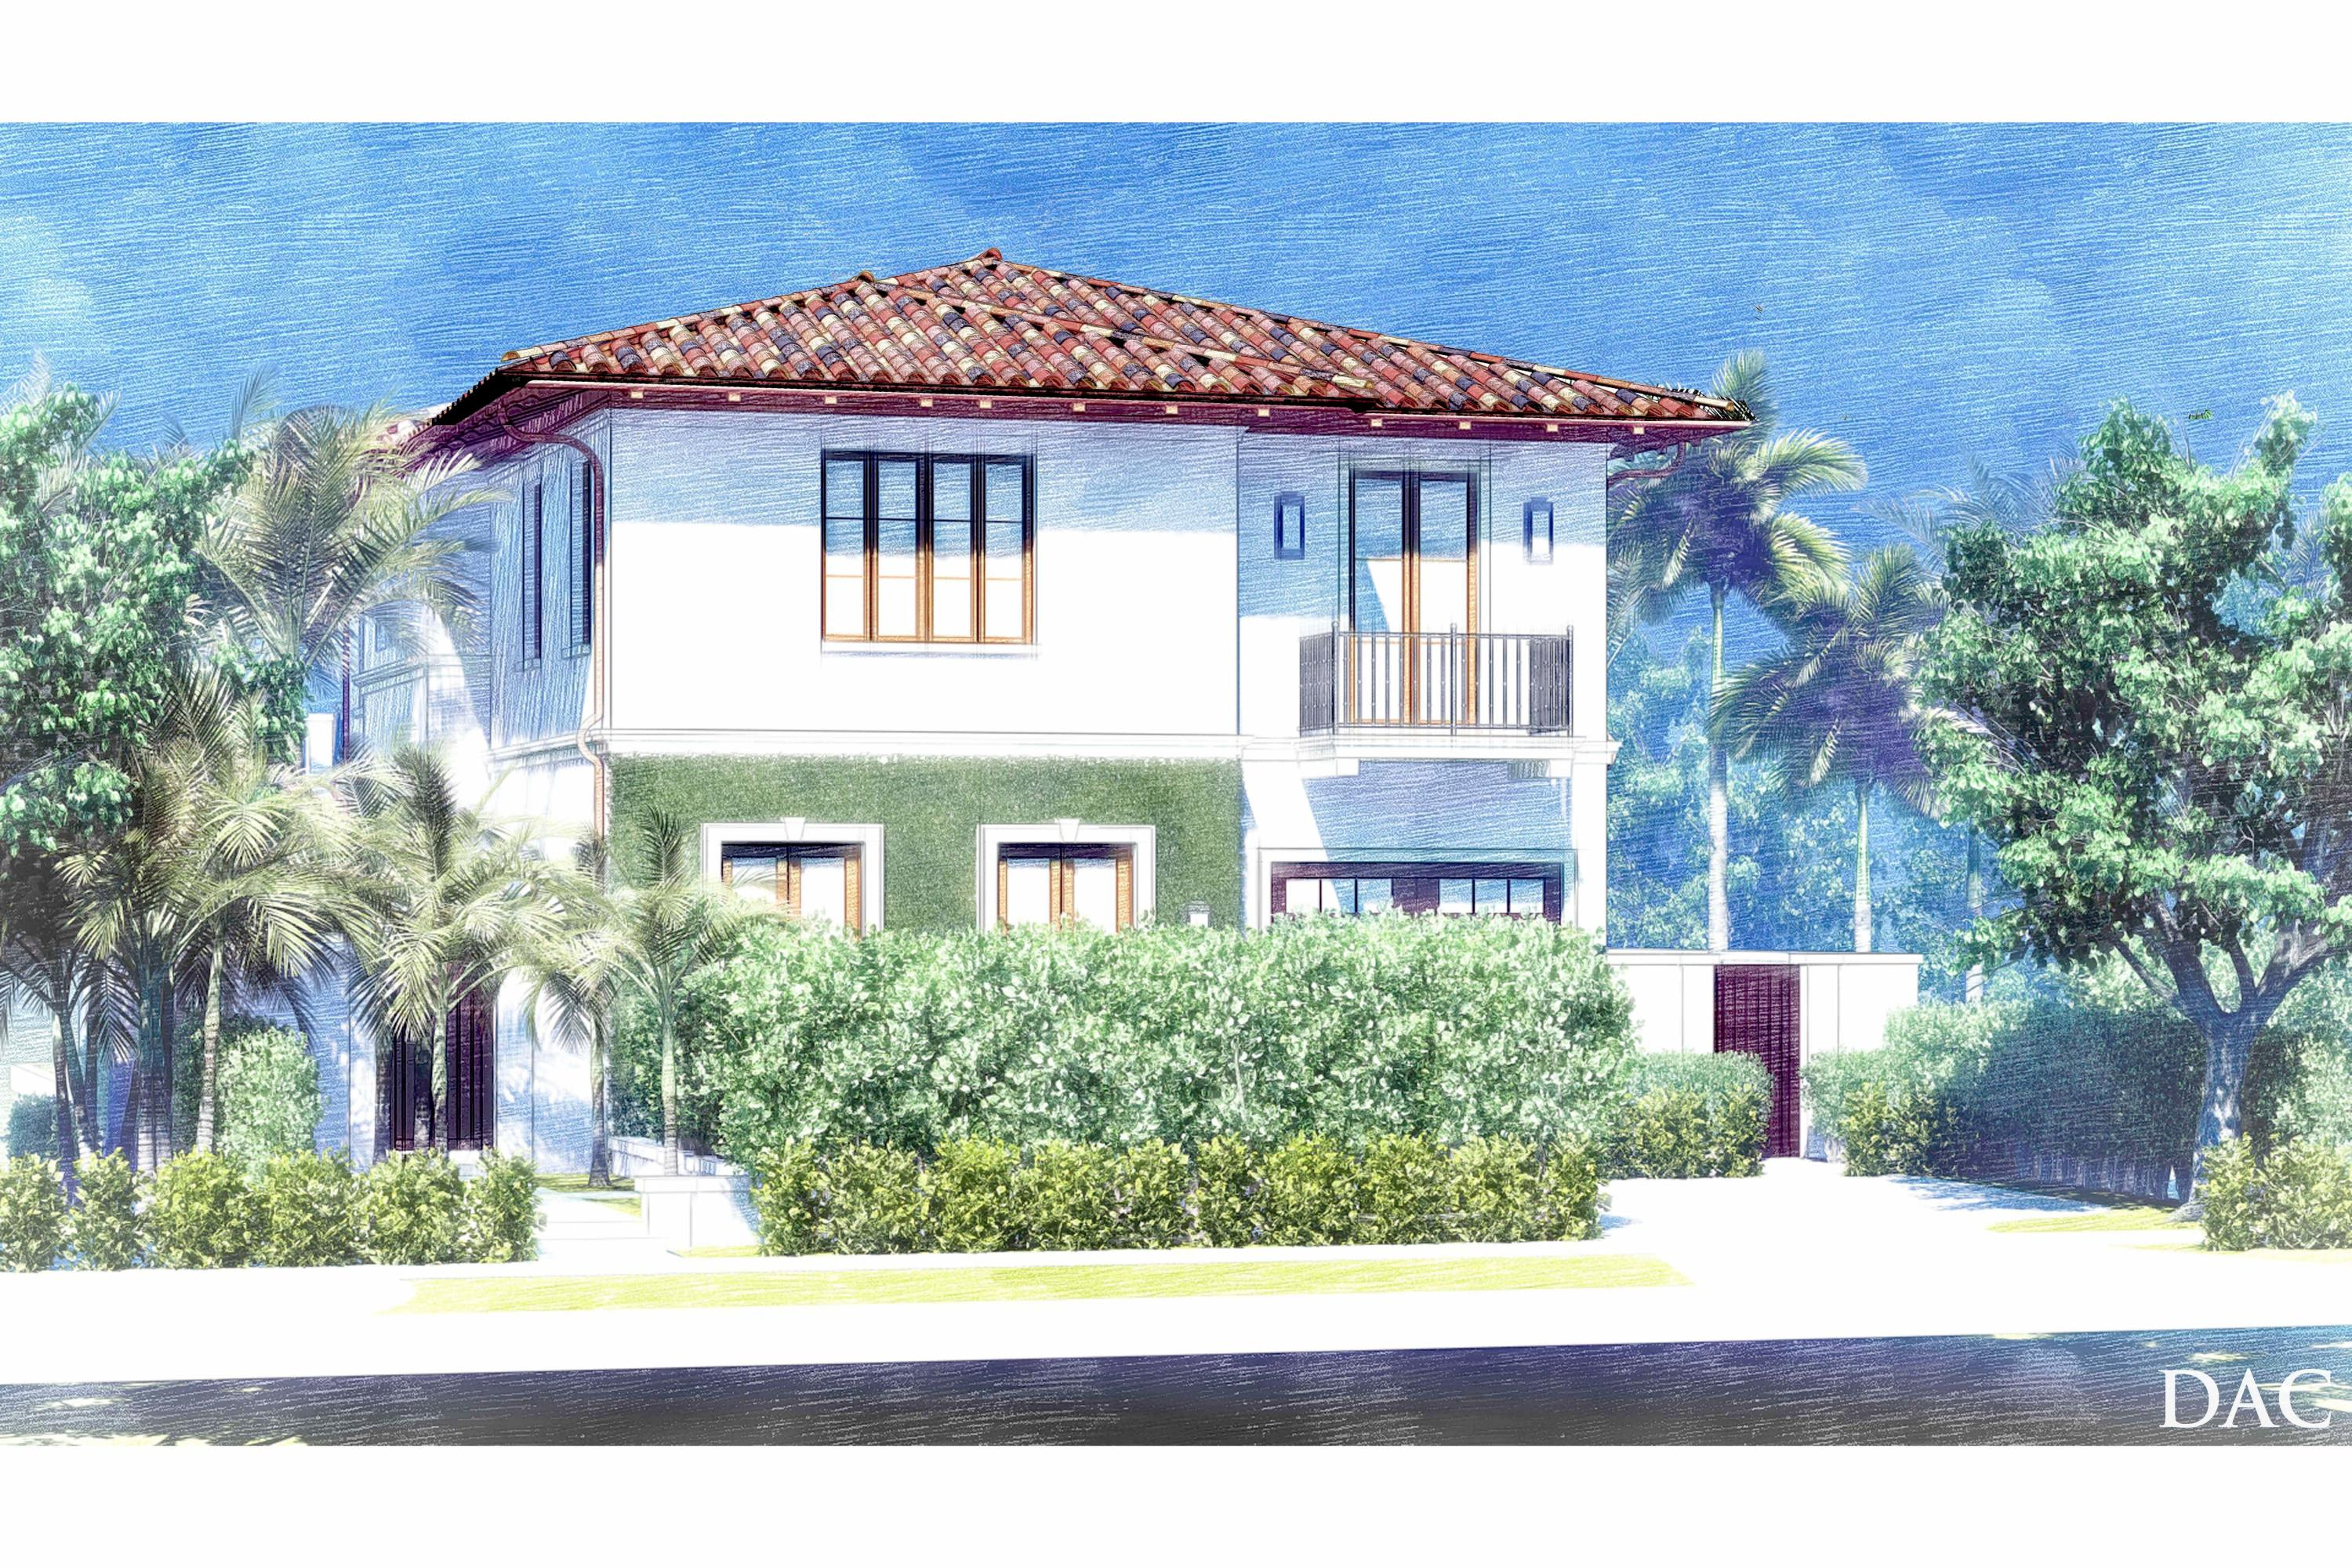 Stunning ''In Town'' New Construction, Modern Mediterranean Masterpiece on quiet and lovely Everglade Ave. Completion Summer 2022. Ideal location, a few blocks from Worth Ave., Beach, Lake Trail, Publix, Amici and The Royal. Home designed by renowned Palm Beach Architect, Pat Segraves, constructed by Dunworth Builders with landscape design by Parker Yannette.  Unique features of this amazing custom home include: 4 Bedrooms, 5 Baths, 1/2 bath, great room, family room, his and her vanities/water closets, Elevator, 2 Laundry Rooms, Chef's Kitchen with 11' Center Island, Pool, Spa, Sun Shelf, Covered Loggia with motorized bug screens, BBQ, Outdoor Shower and Smart Home Automation. 3D Model and Full Plan Set Available Upon Request.